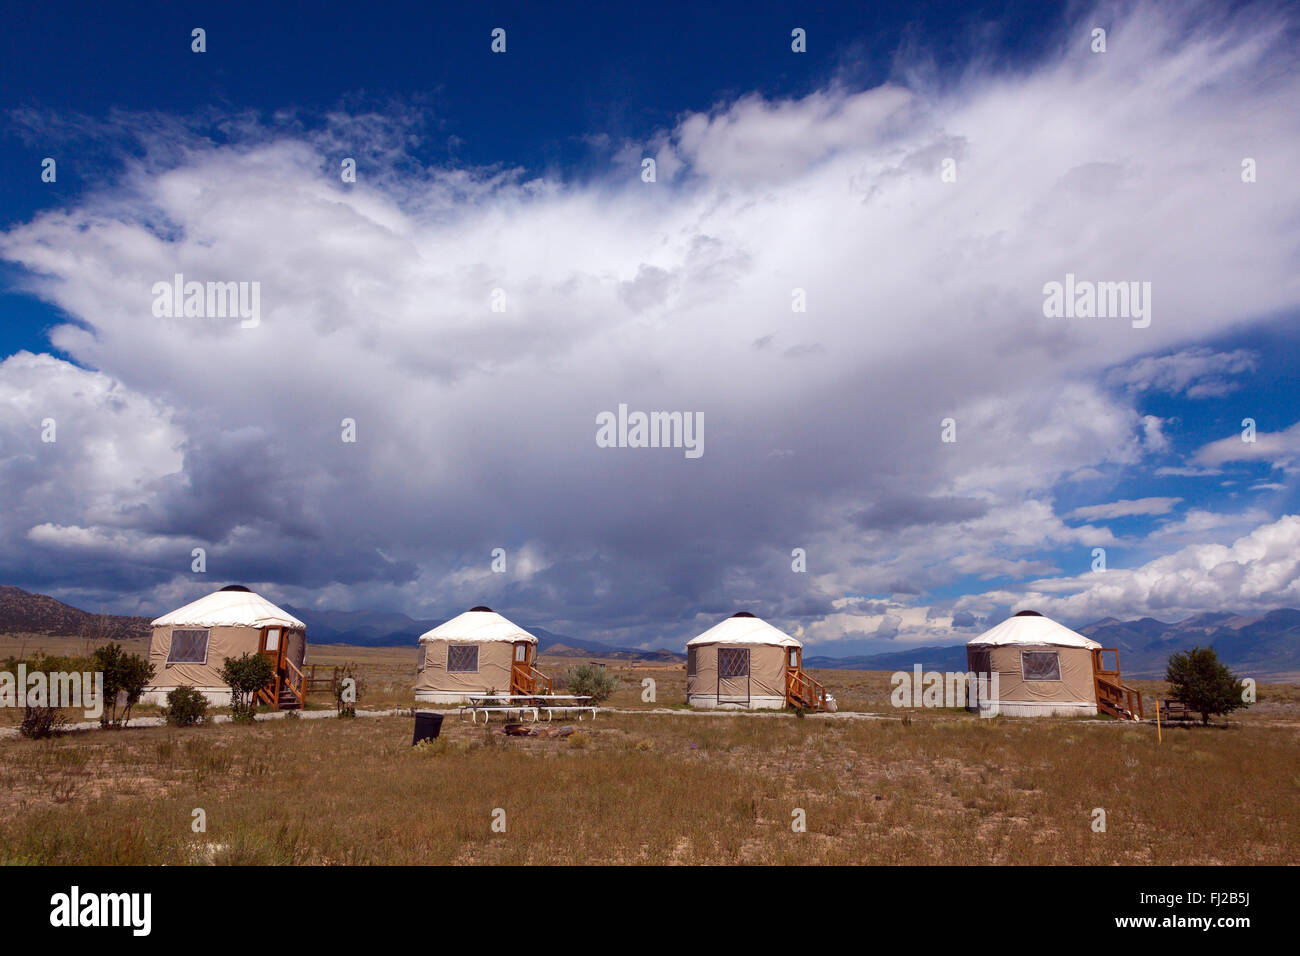 YURTS are used as accomodations at JOYFUL JOURNEYS HOT SPRINGS - MOFFAT COLORADO - Stock Image